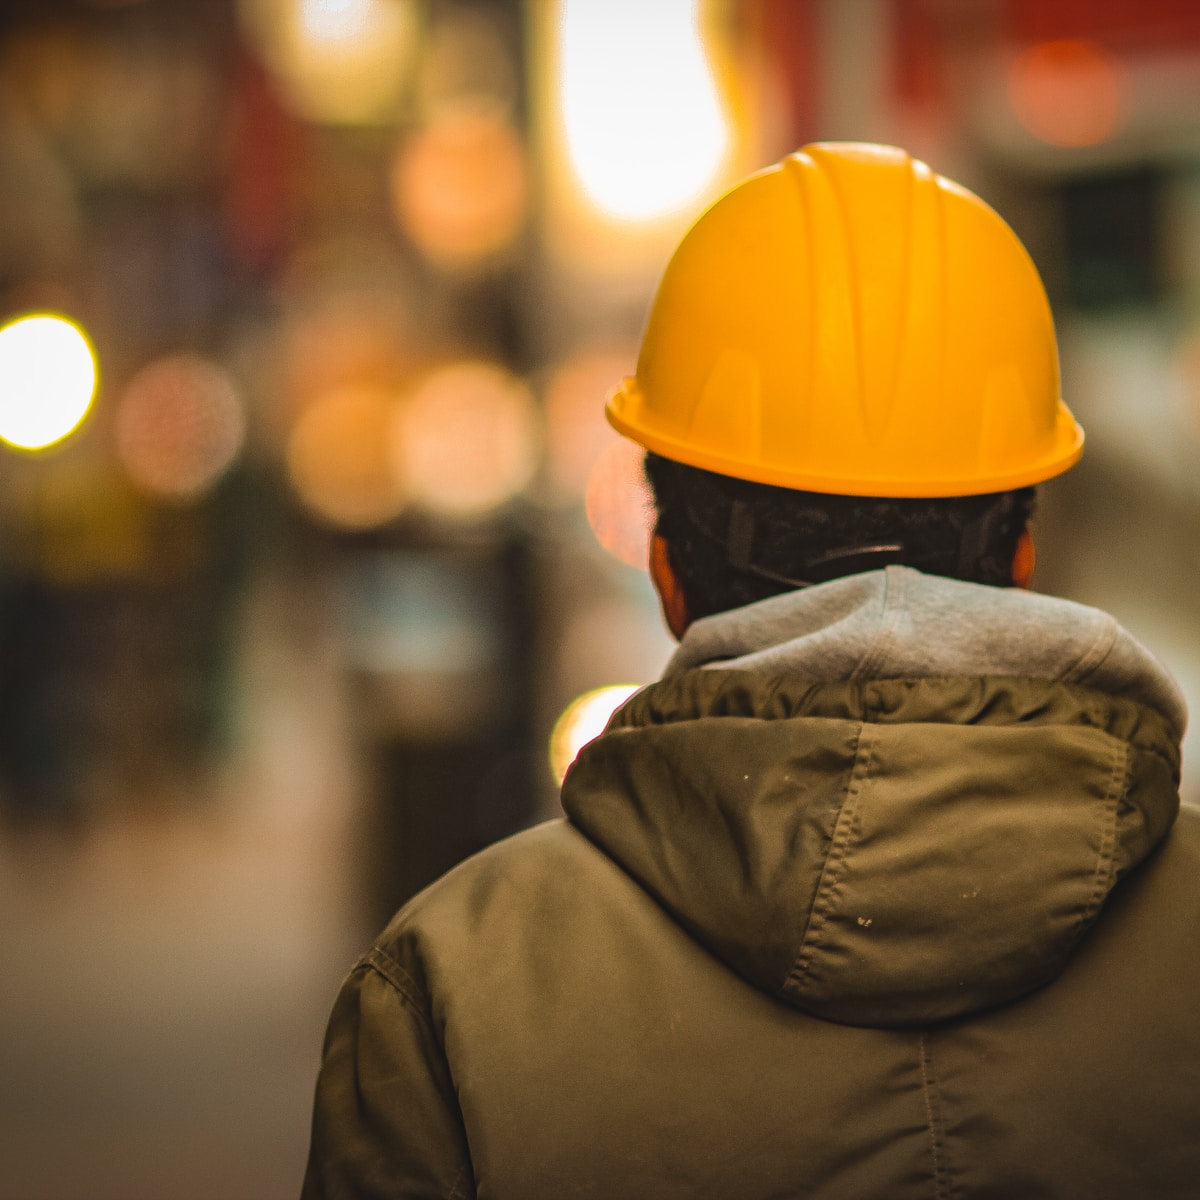 person in yellow hard hat and brown jacket